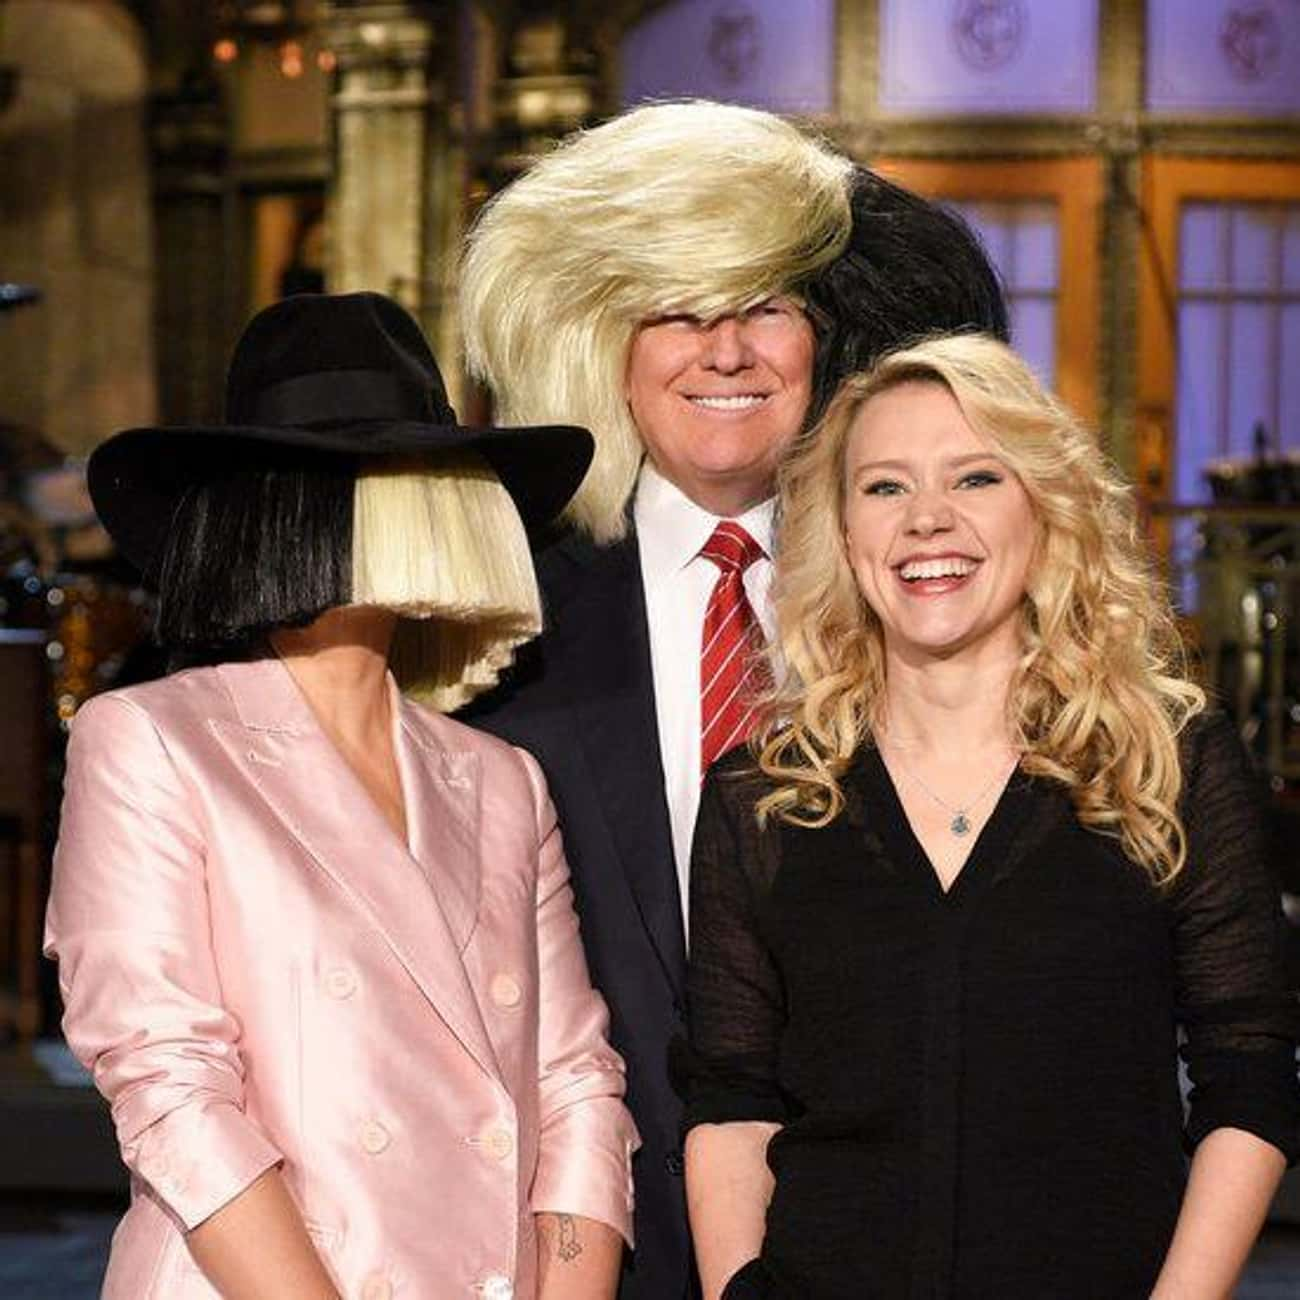 Saturday Night Live - Season 4 is listed (or ranked) 2 on the list The Worst Seasons of Saturday Night Live